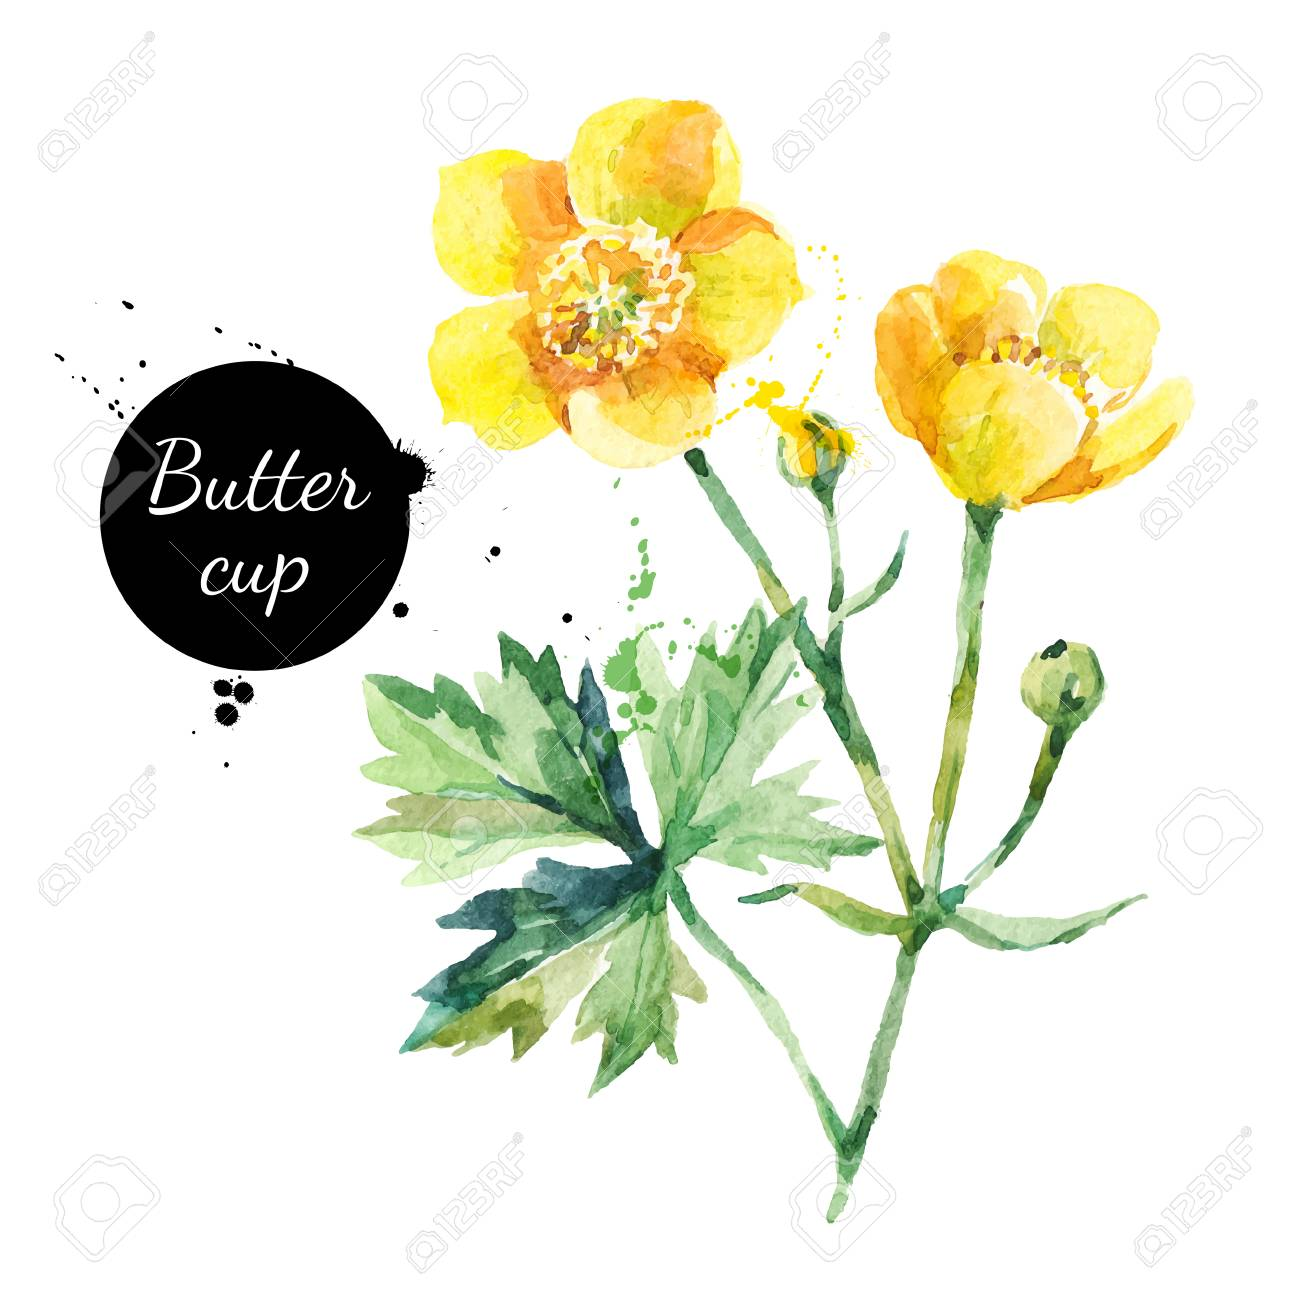 b5e3f3daf7748 Hand drawn watercolor yellow buttercup flower illustration. Vector painted  sketch botanical herbs isolated on white